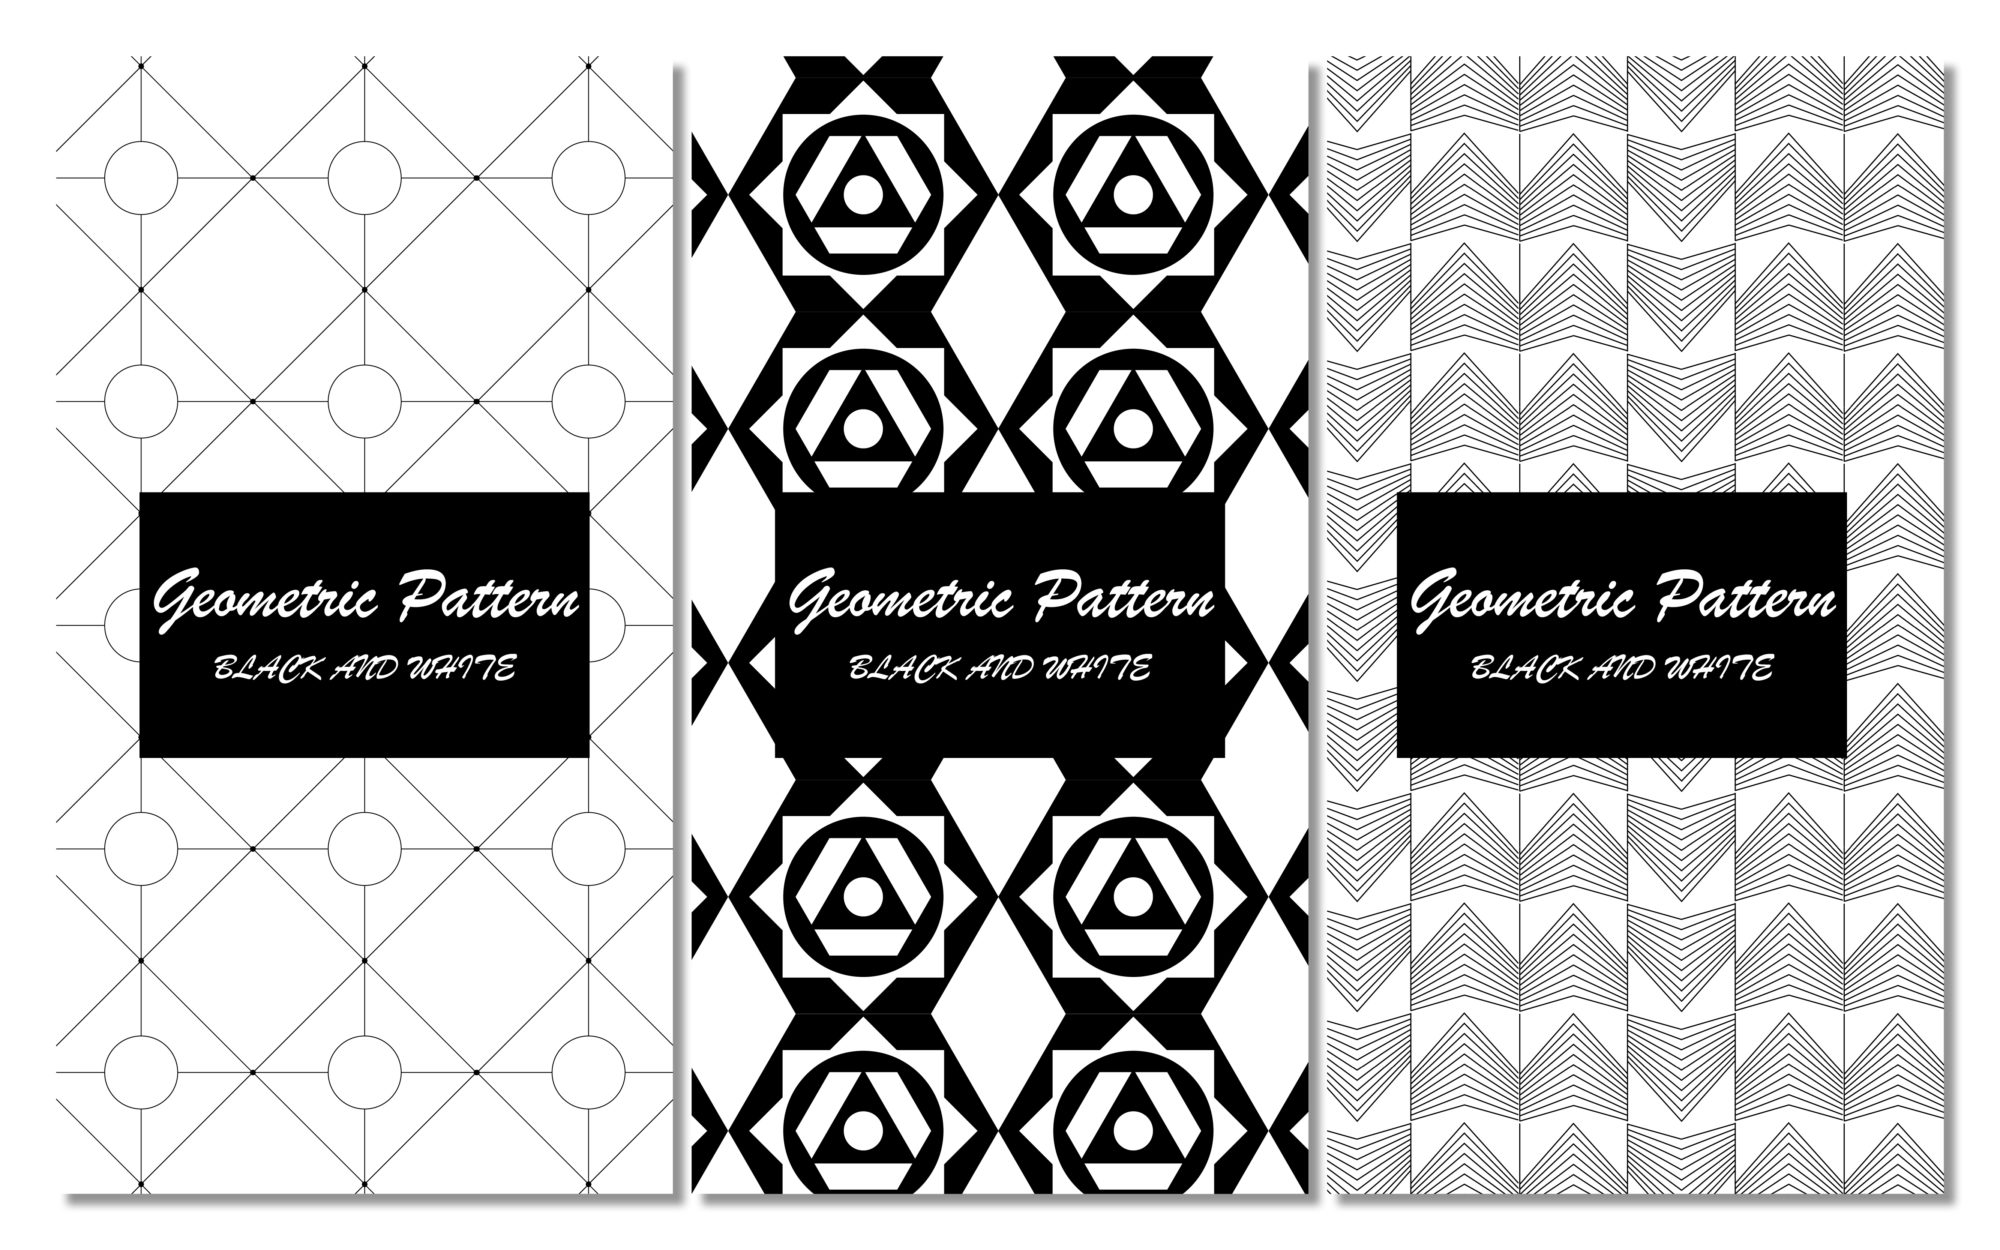 geometric-pattern-design-textile-decoration-noir-blanc